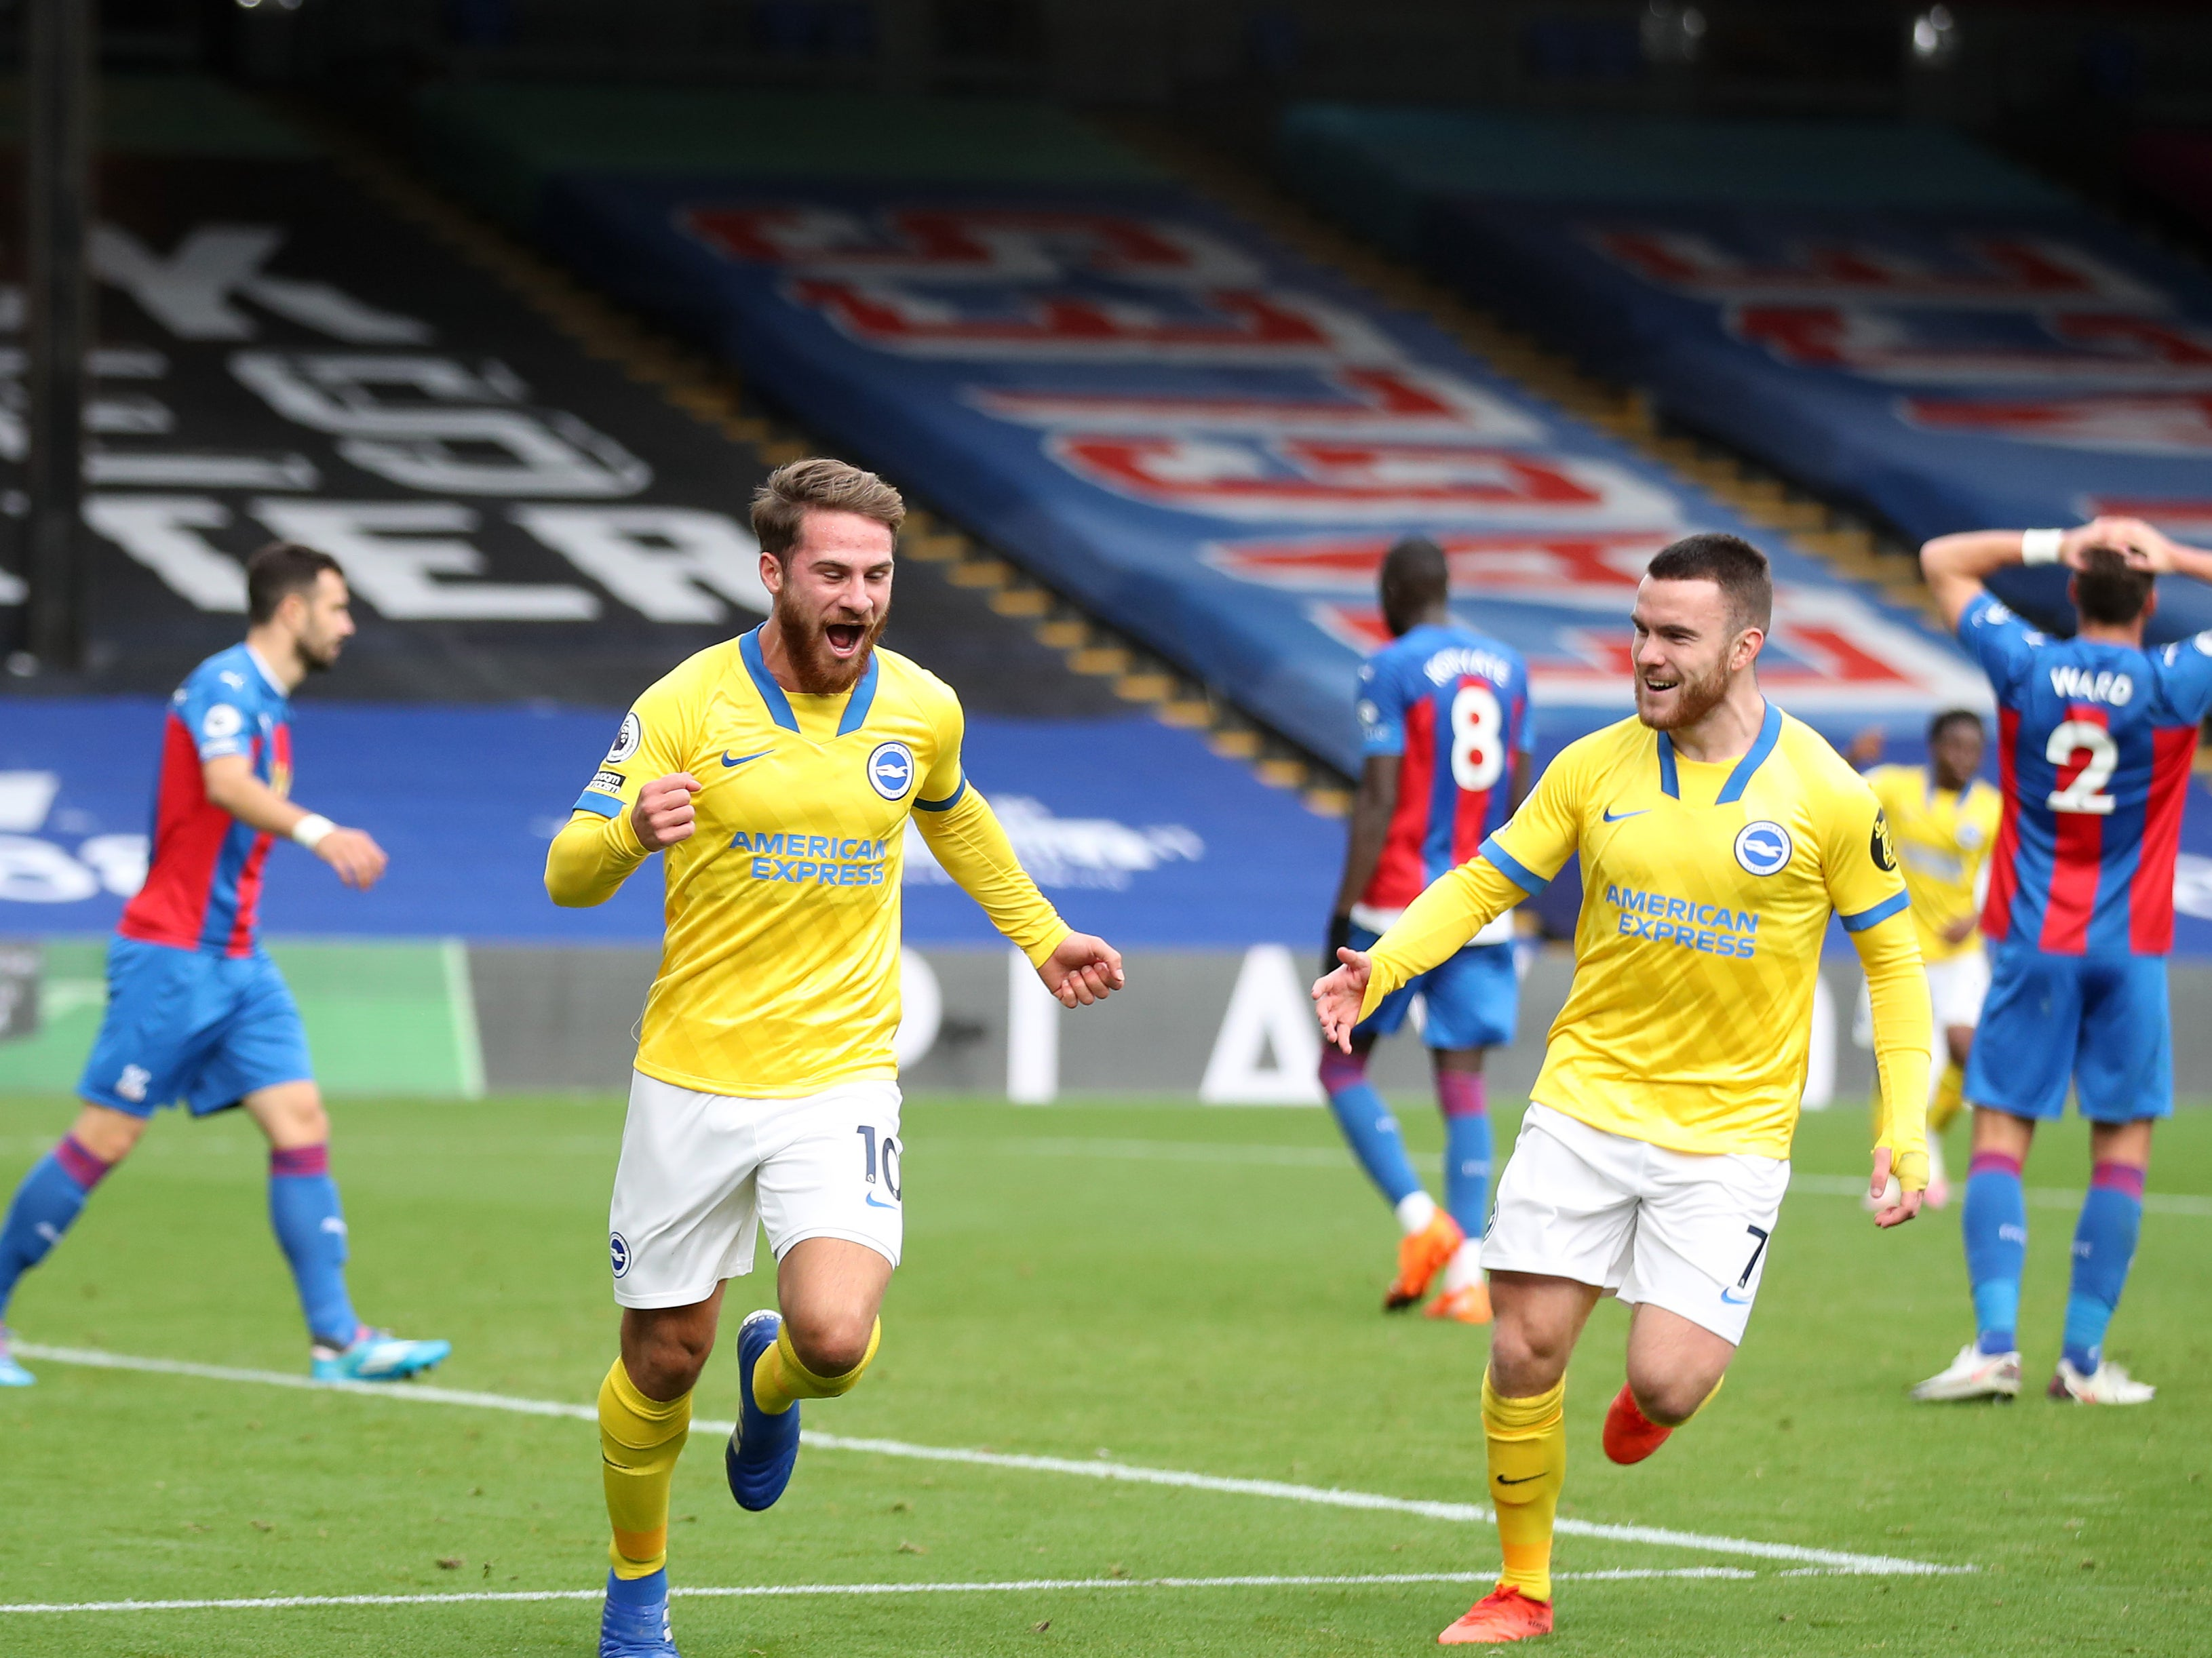 Crystal Palace vs Brighton LIVE: Result and reaction from Premier League fixture today